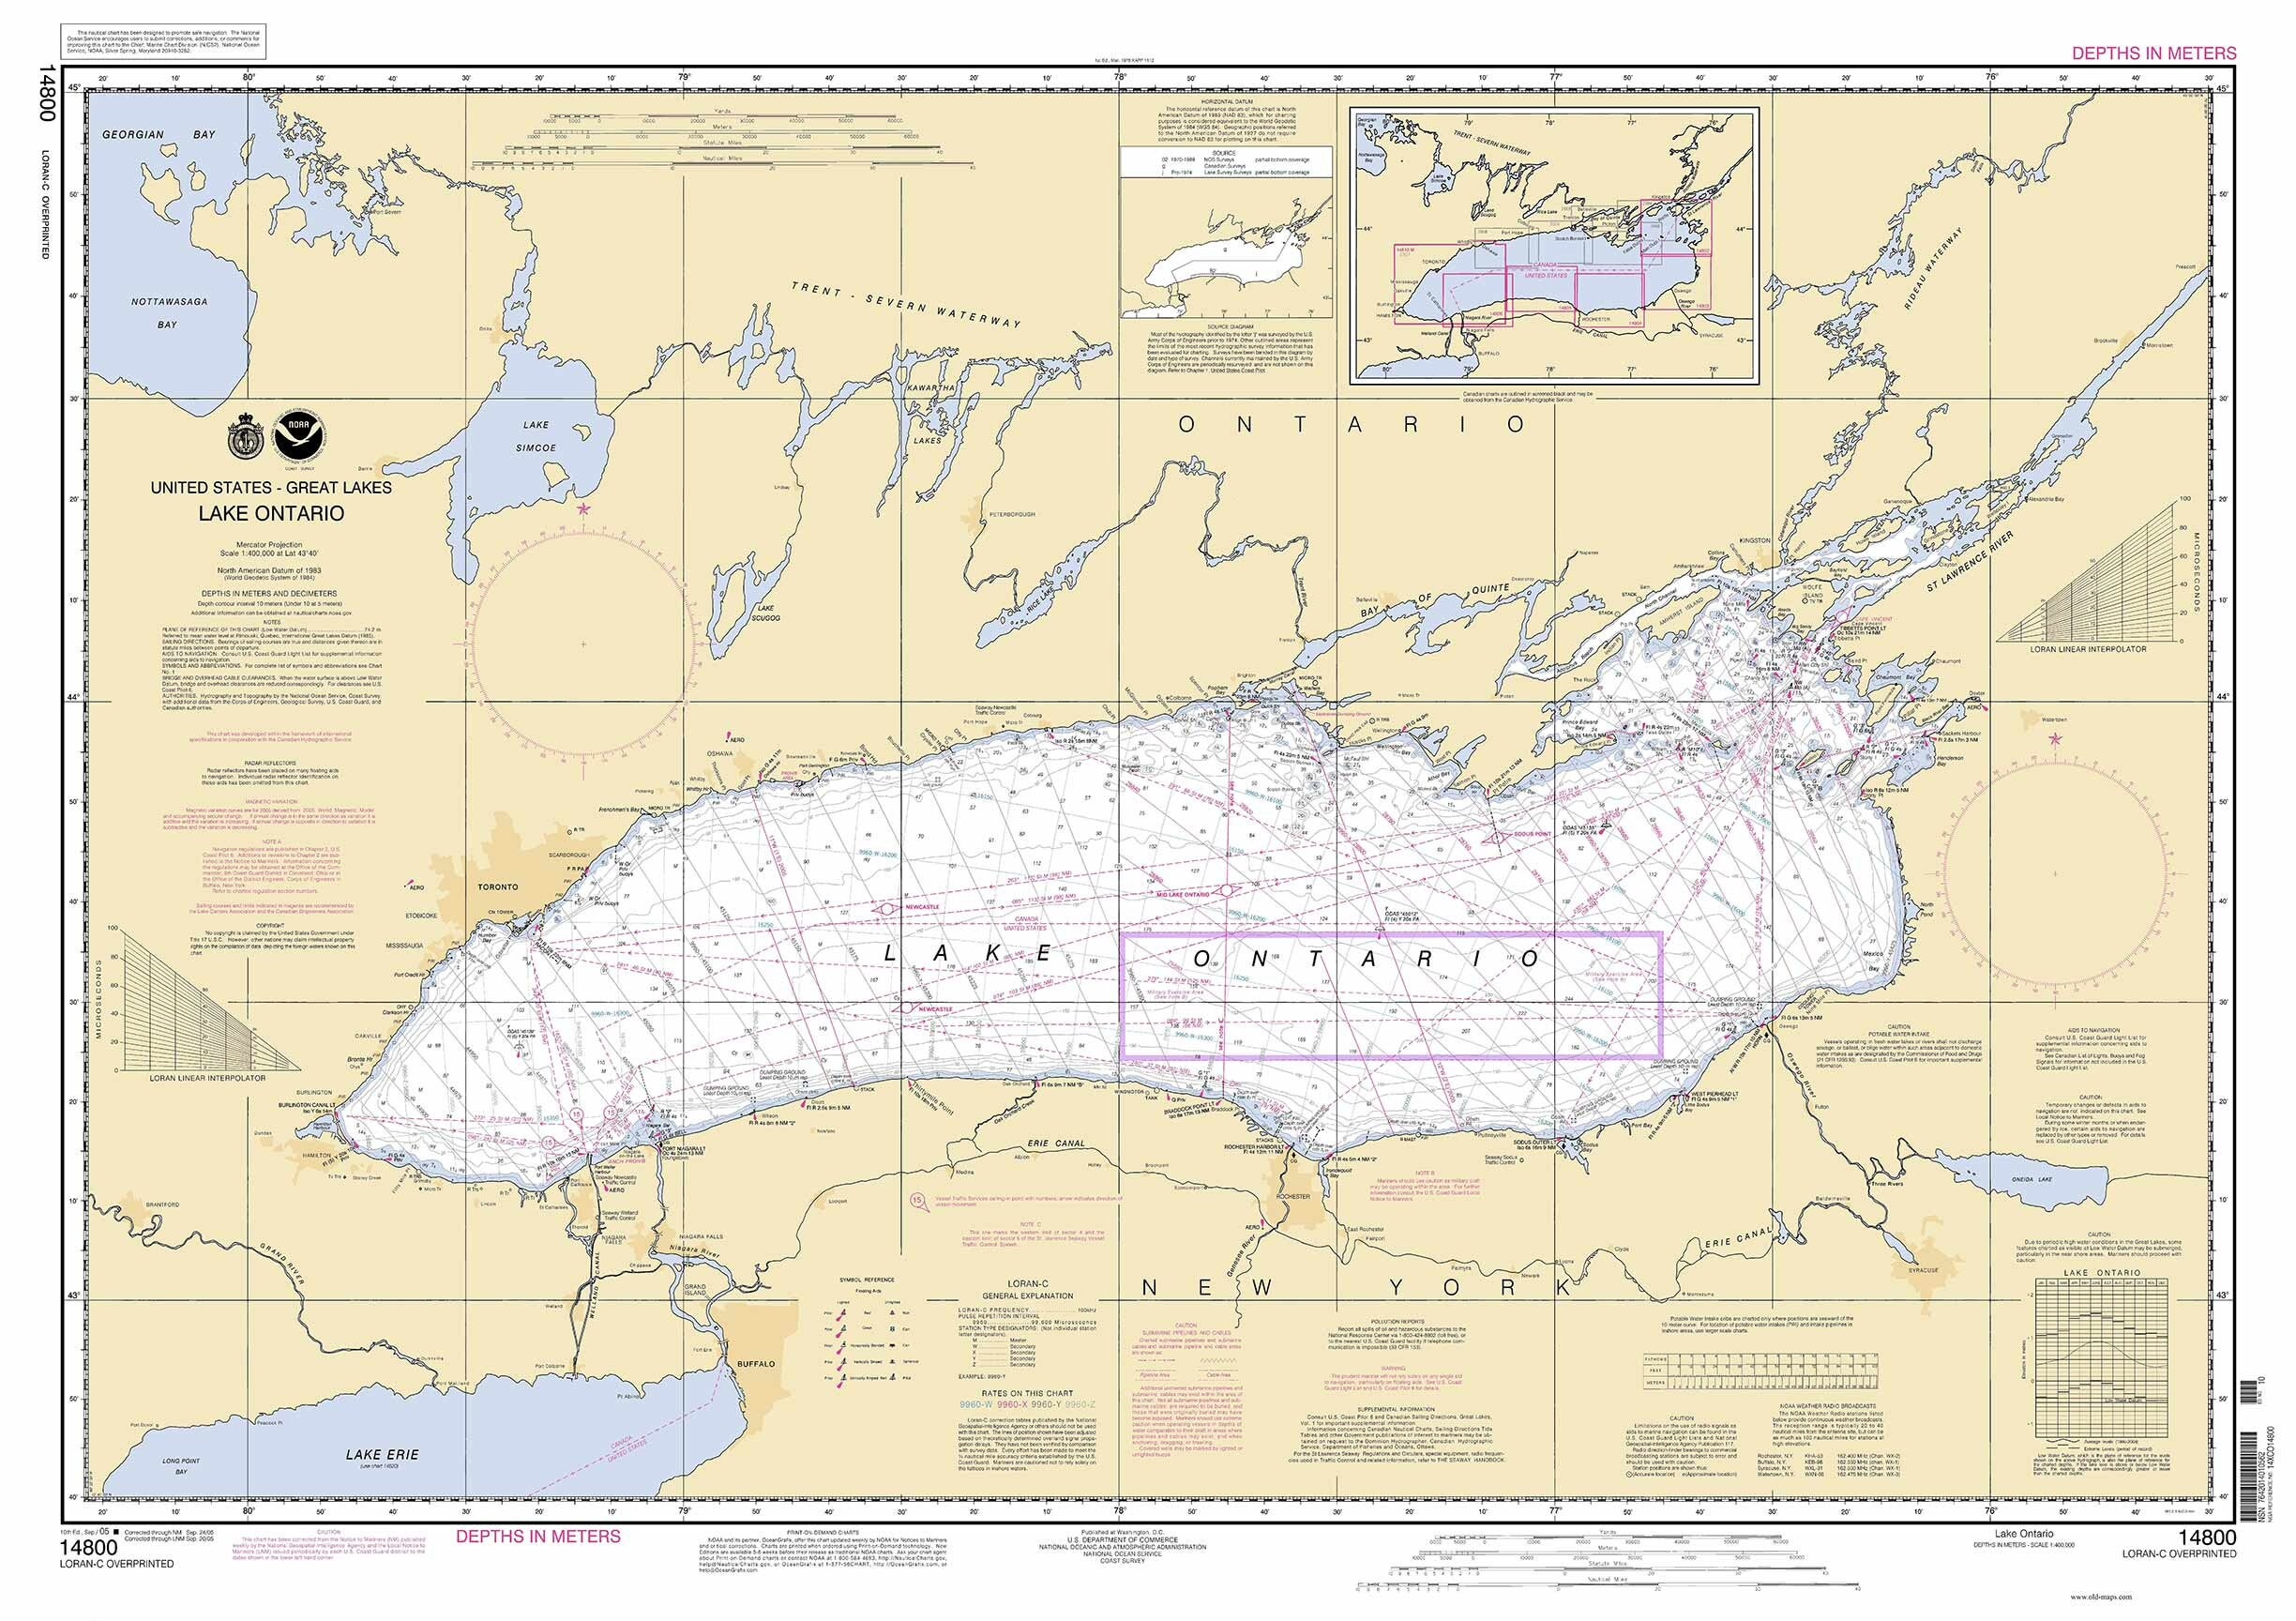 Lake Ontario 2005 Nautical Map Reprint - Great Lakes 002 on map of ontario canada lakes, map of road united interstate highway, map mn cities, map of lake michigan, map of balsam lake, map of ny state lakes, map of palm beach county, map of bwca lakes, map of lakes in california, map of ar lakes, map of maine usa, map of lakes in vermont, map of africa lakes, map of bc lakes, map of michigan townships, map of orange county, map of eastern sd lakes, map of minn, map of western pa lakes, map of sask lakes,